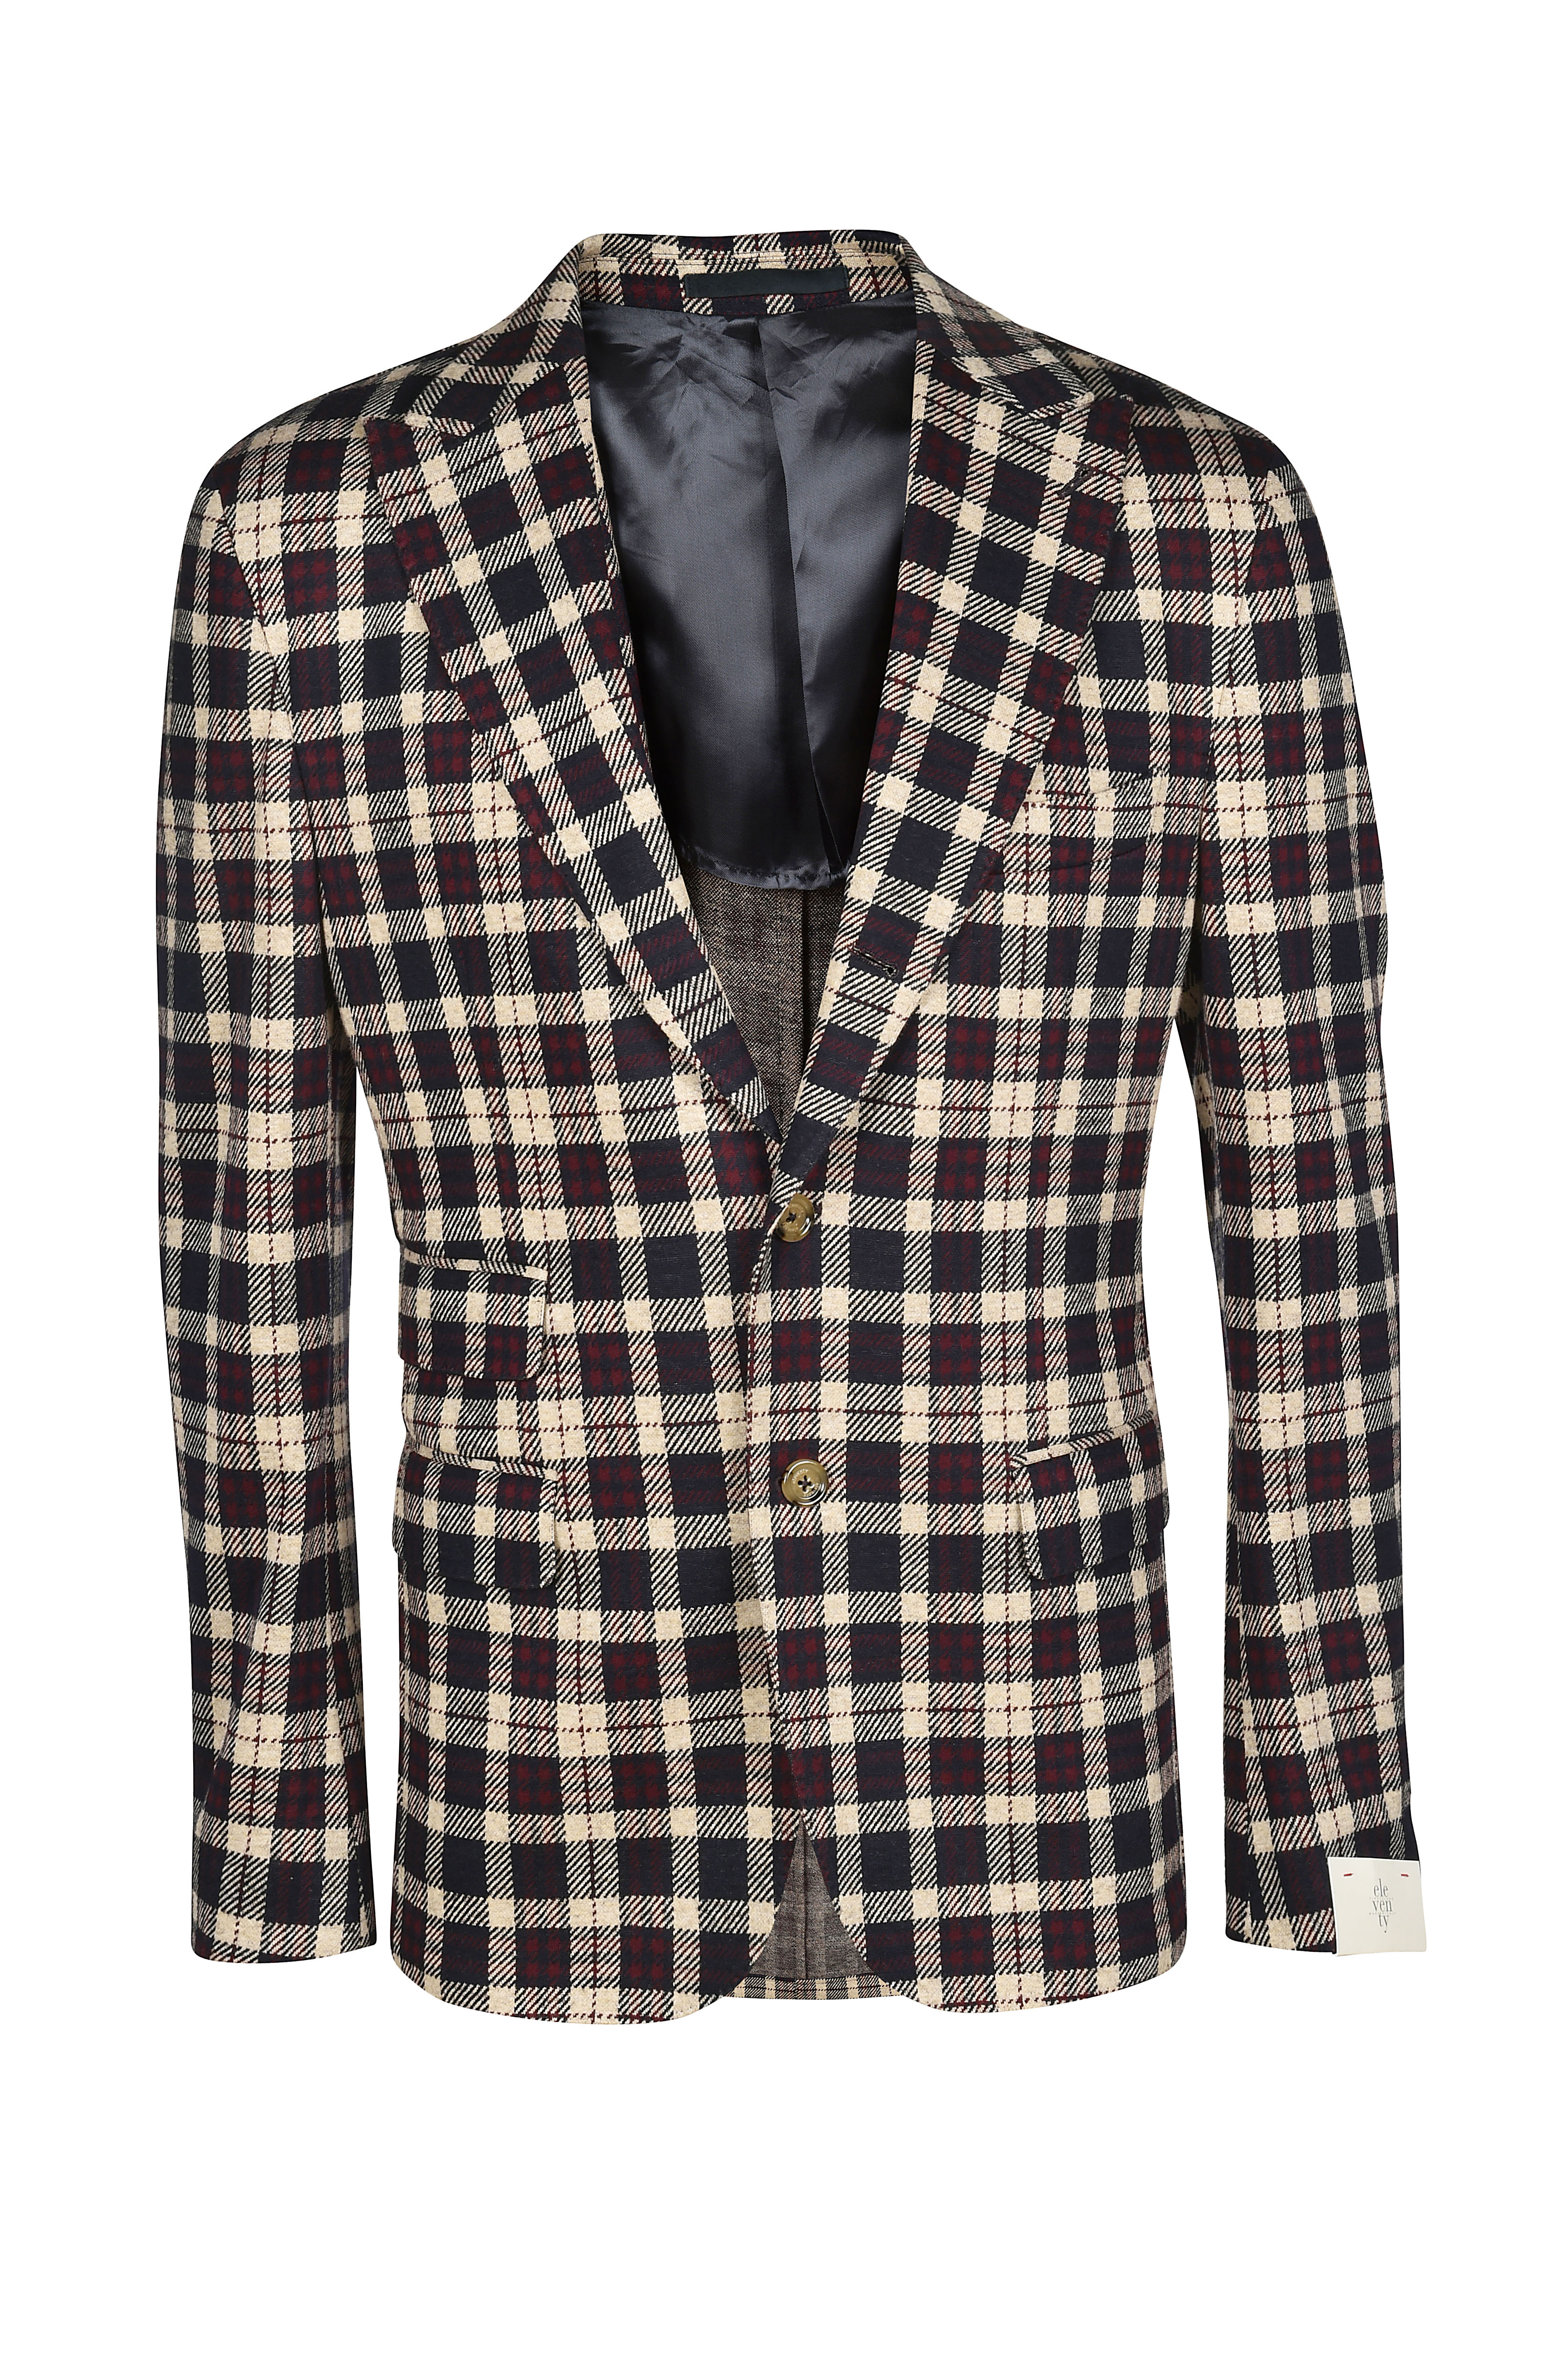 Checked wool and cotton jacket ELEVENTY |  | B75GIAB03-TES0B09110